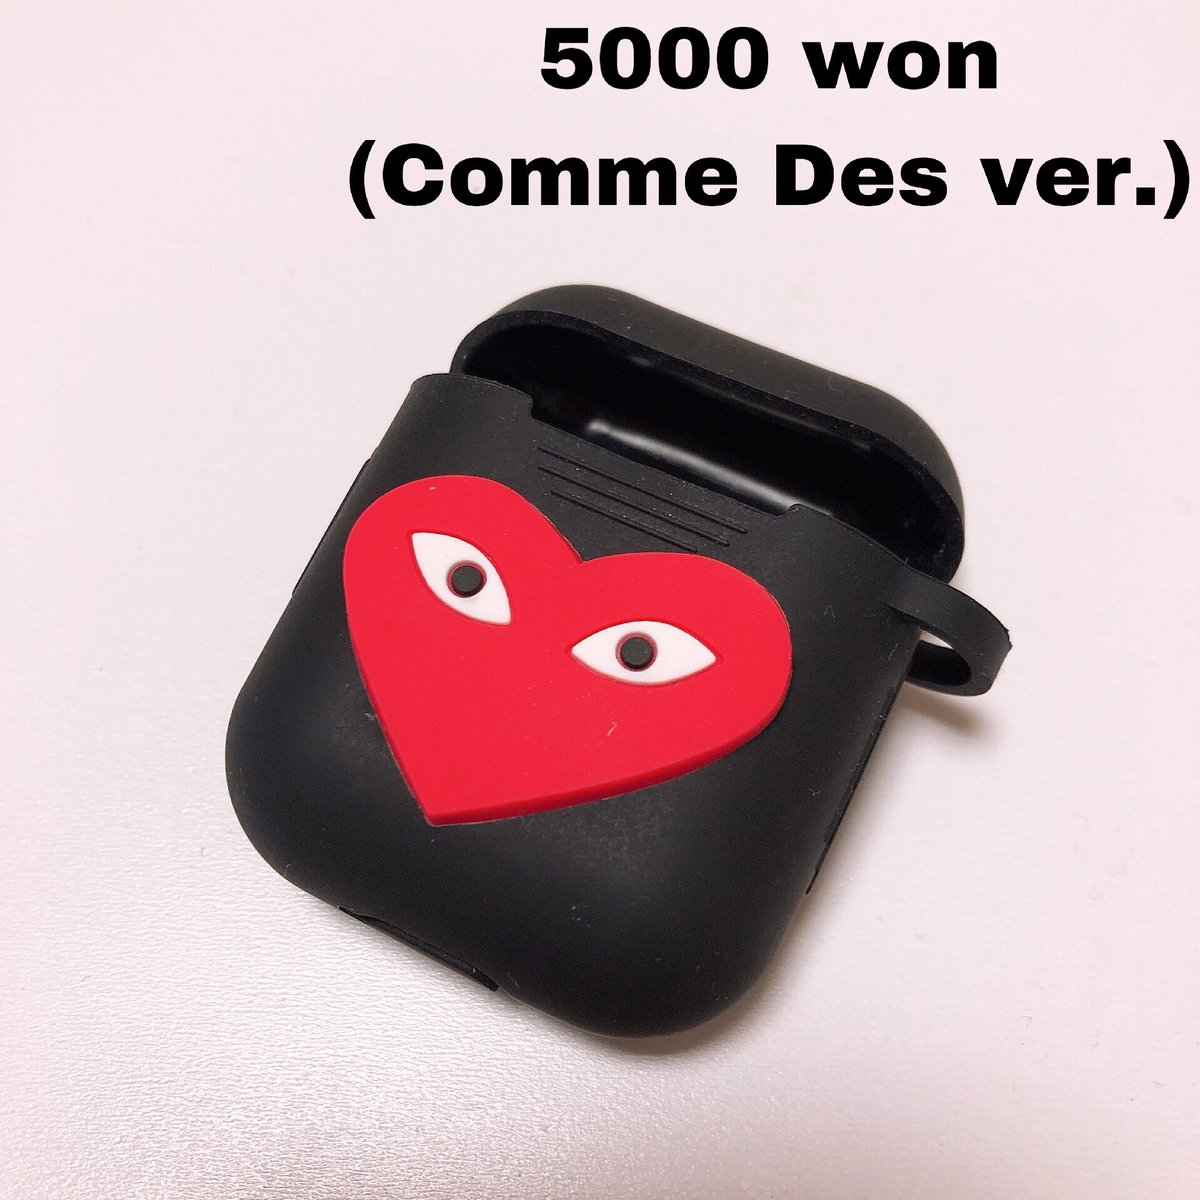 ☁️G.O.(Group Order)->Plz DM  ☁️Price: 5000 won  ☁️Shipping fee: Up to 20-3000won                         Over 20-4000won  ☁️If you want overseas delivery, Plz DM  #HWANGMINHYUN #Commedes #Airpodcase